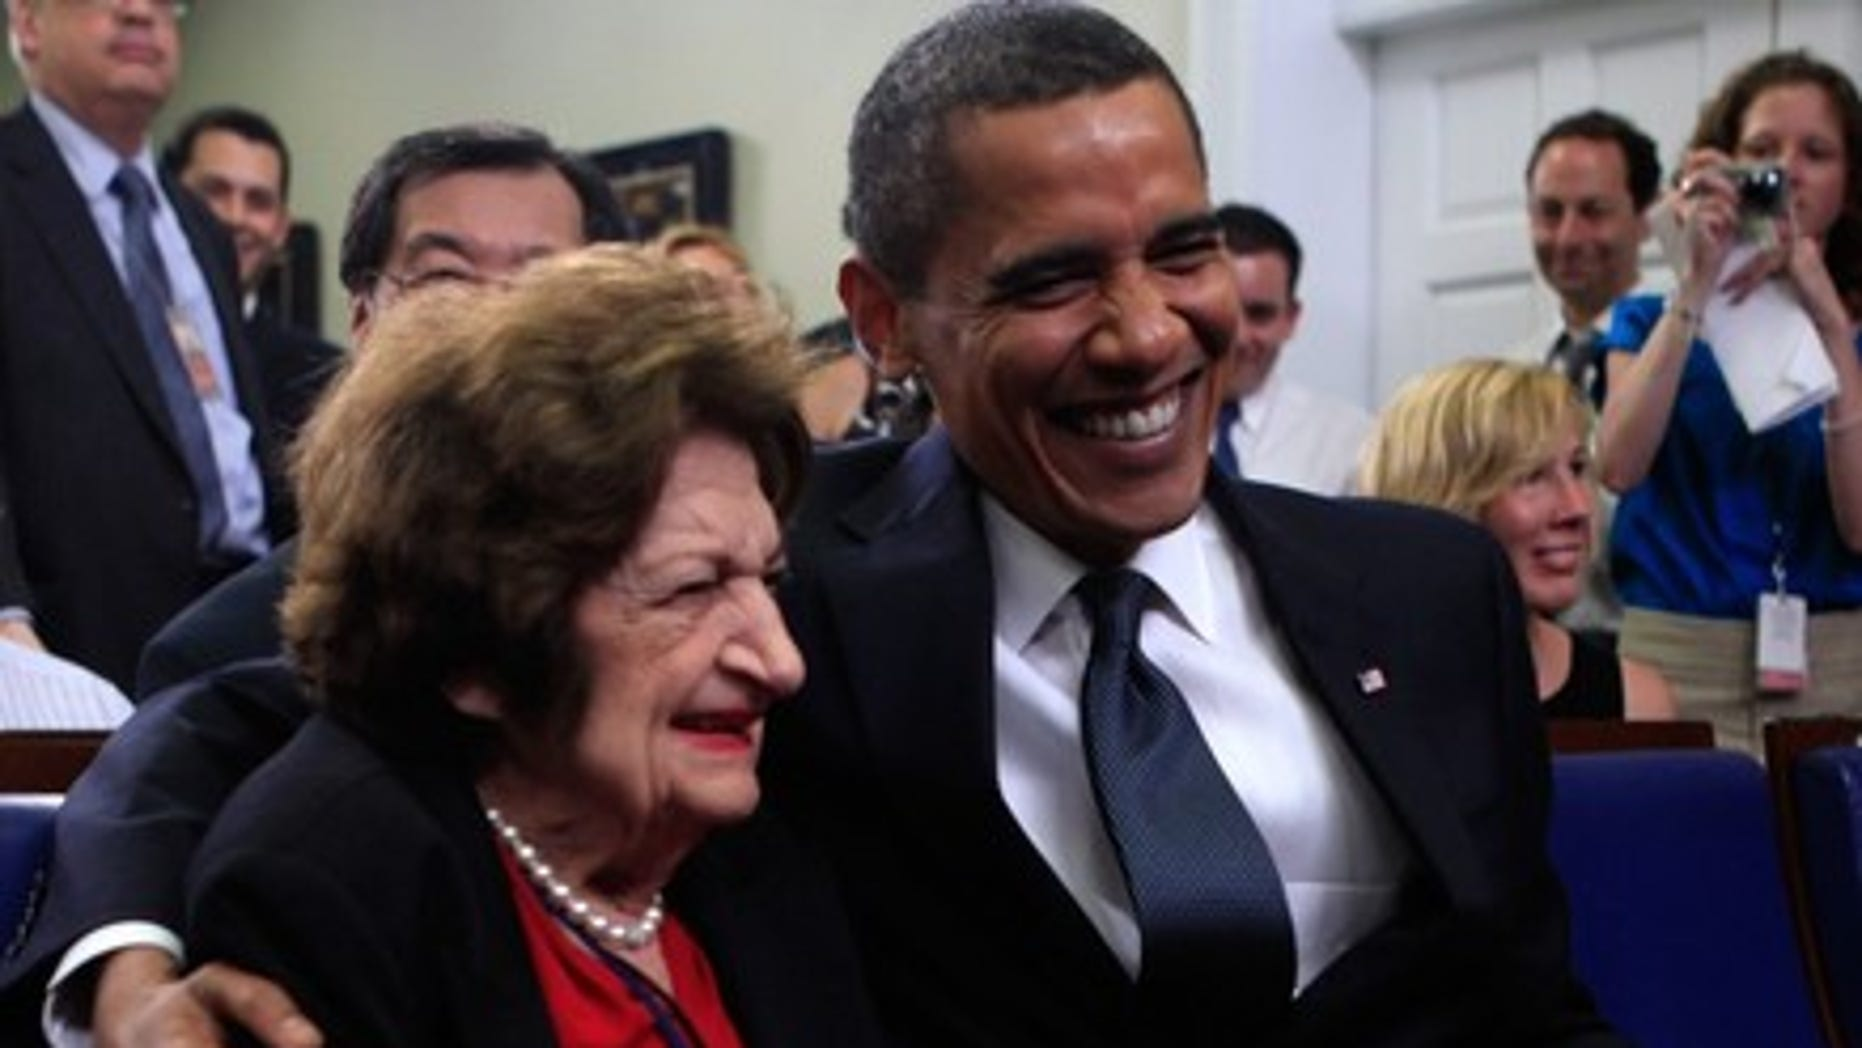 Aug. 4, 2009: President Obama mugs for the camera with Hearst White House columnist Helen Thomas during a mutual birthday celebration in the White House briefing room. (Reuters)